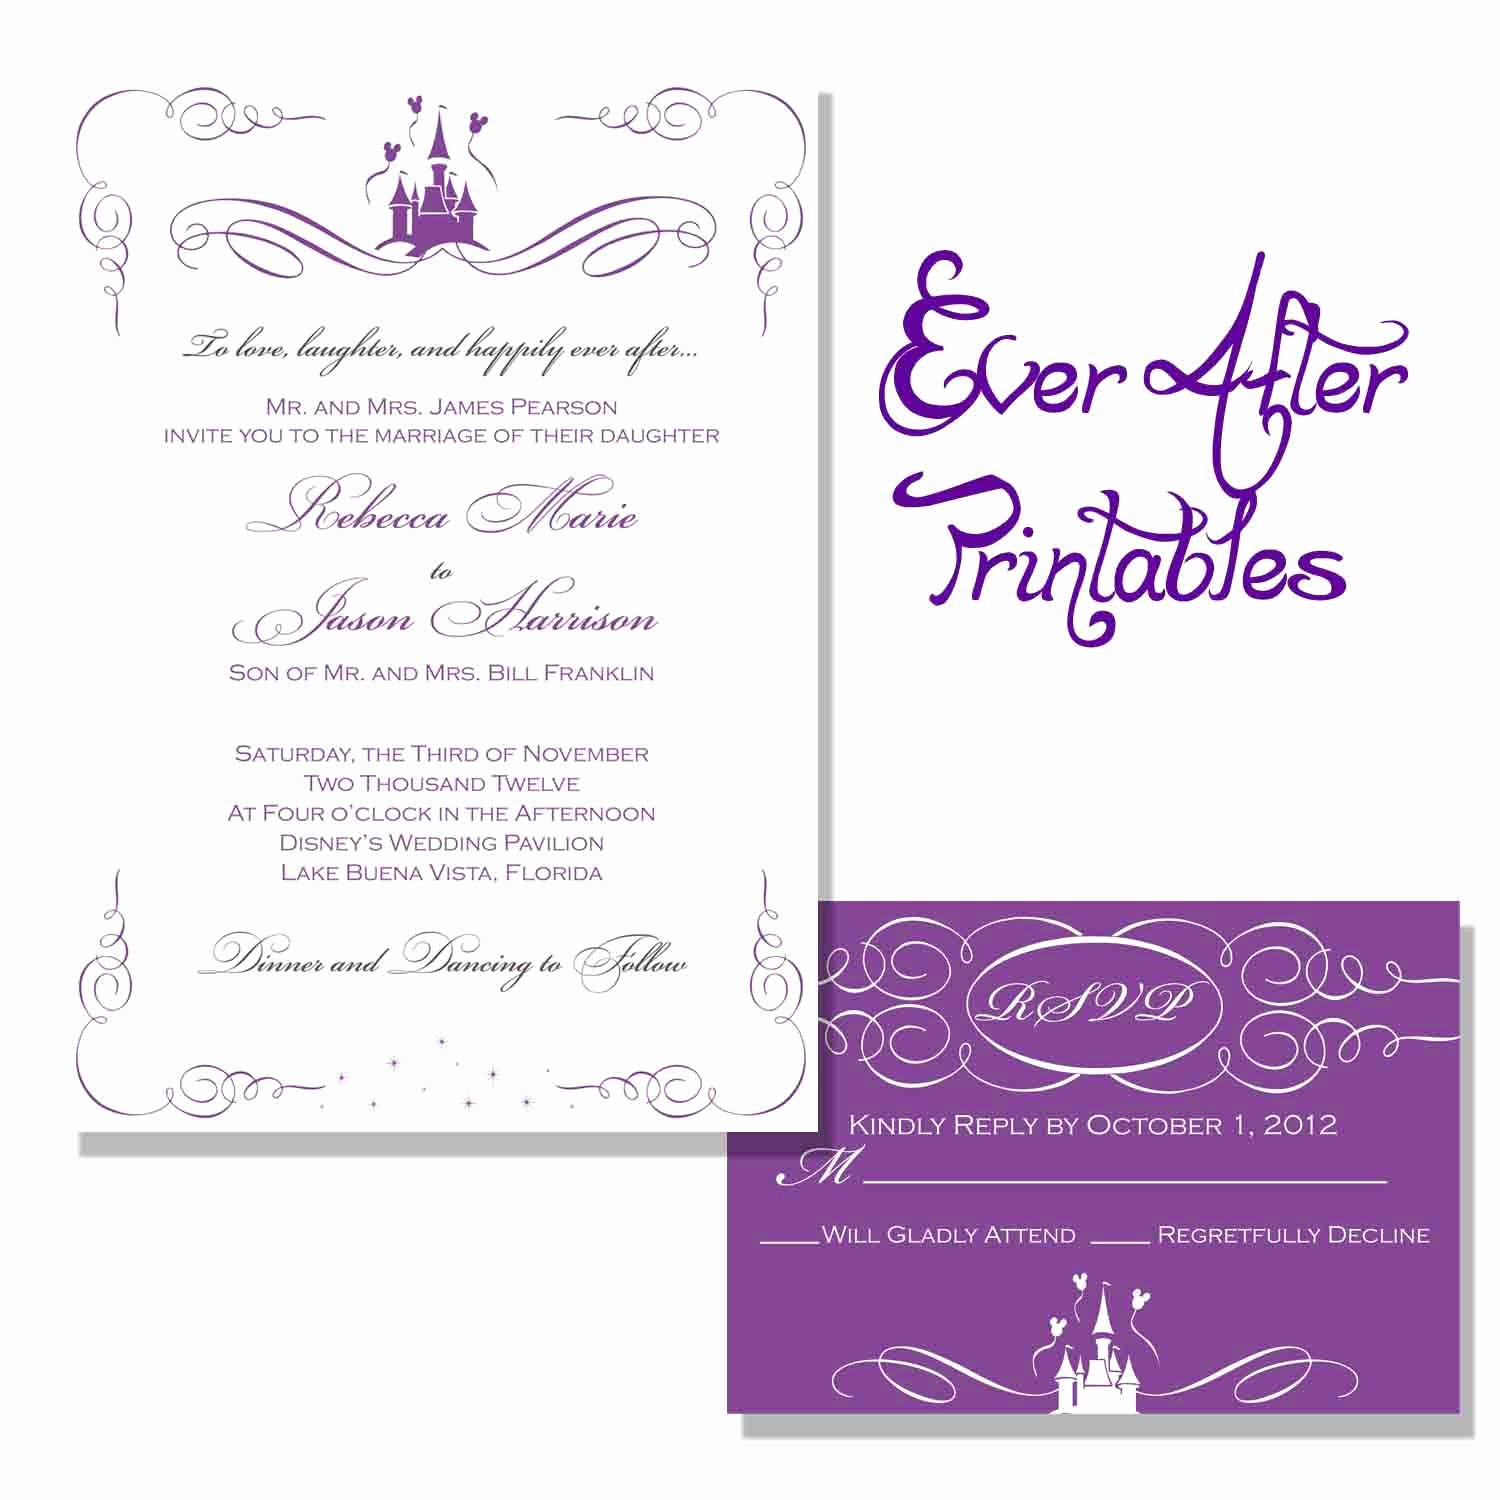 Wedding Invitation Template for Word Lovely Engagement Party Invitation Word Templates Free Card